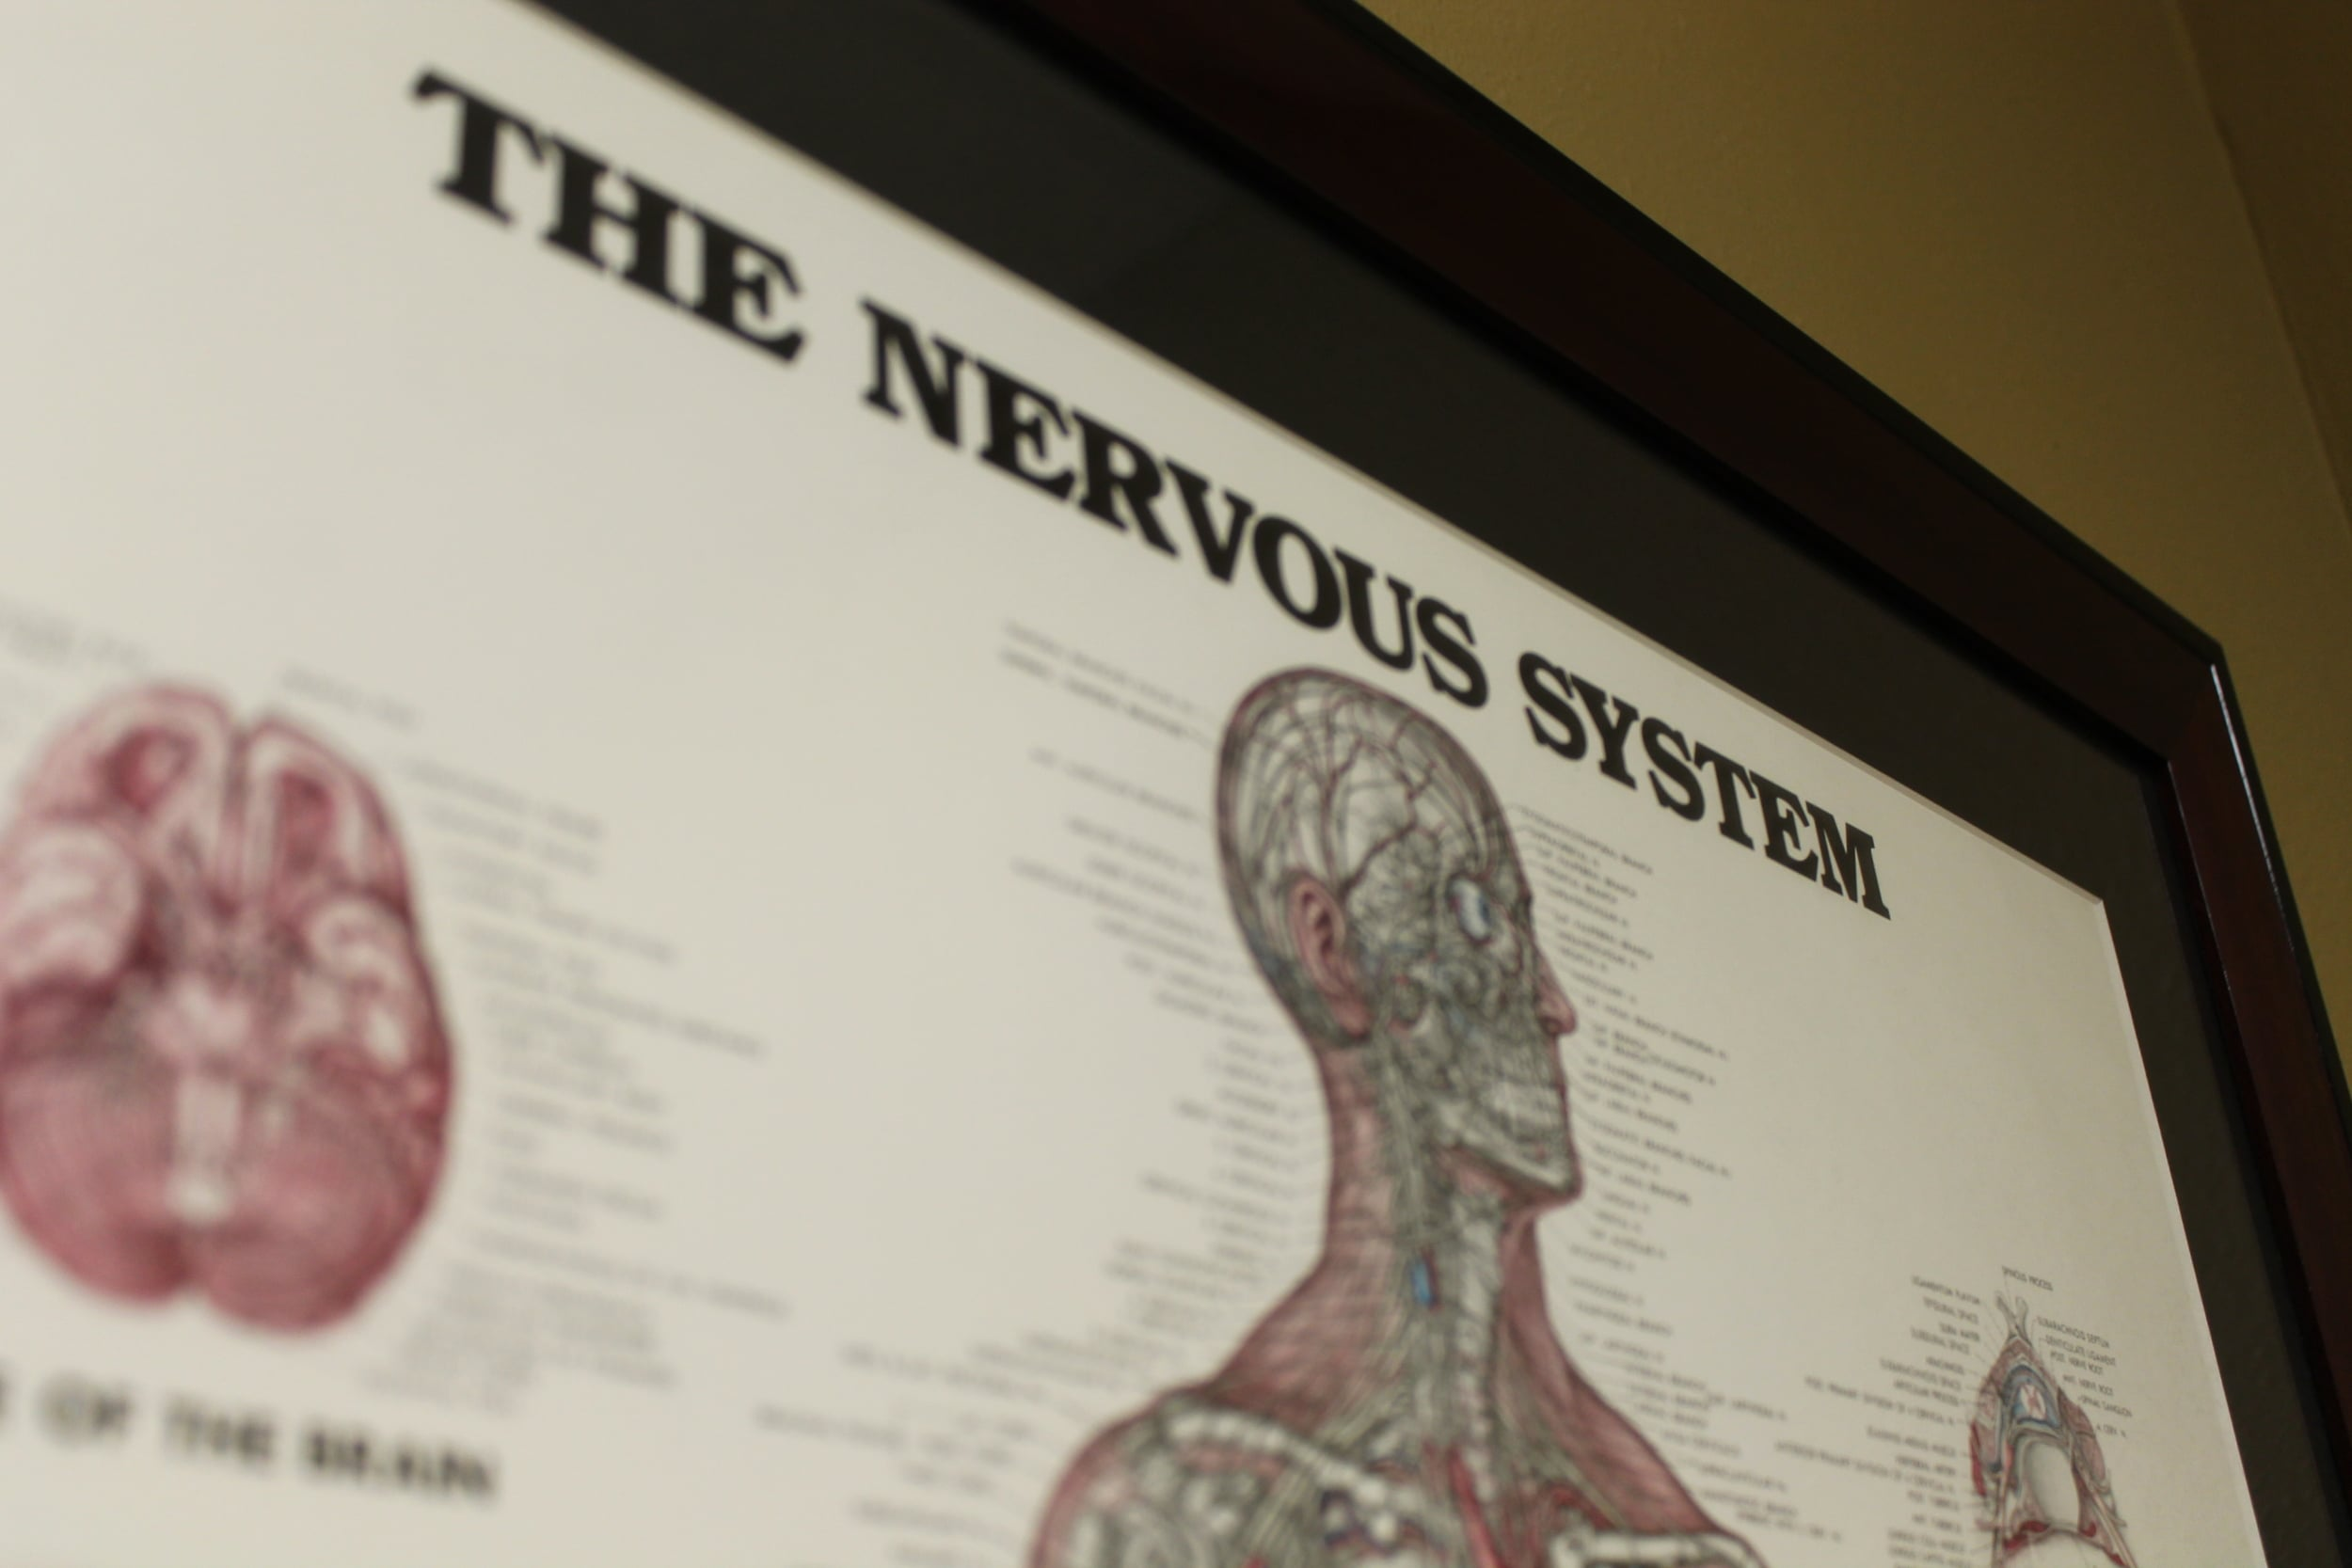 Experts of the Nervous System